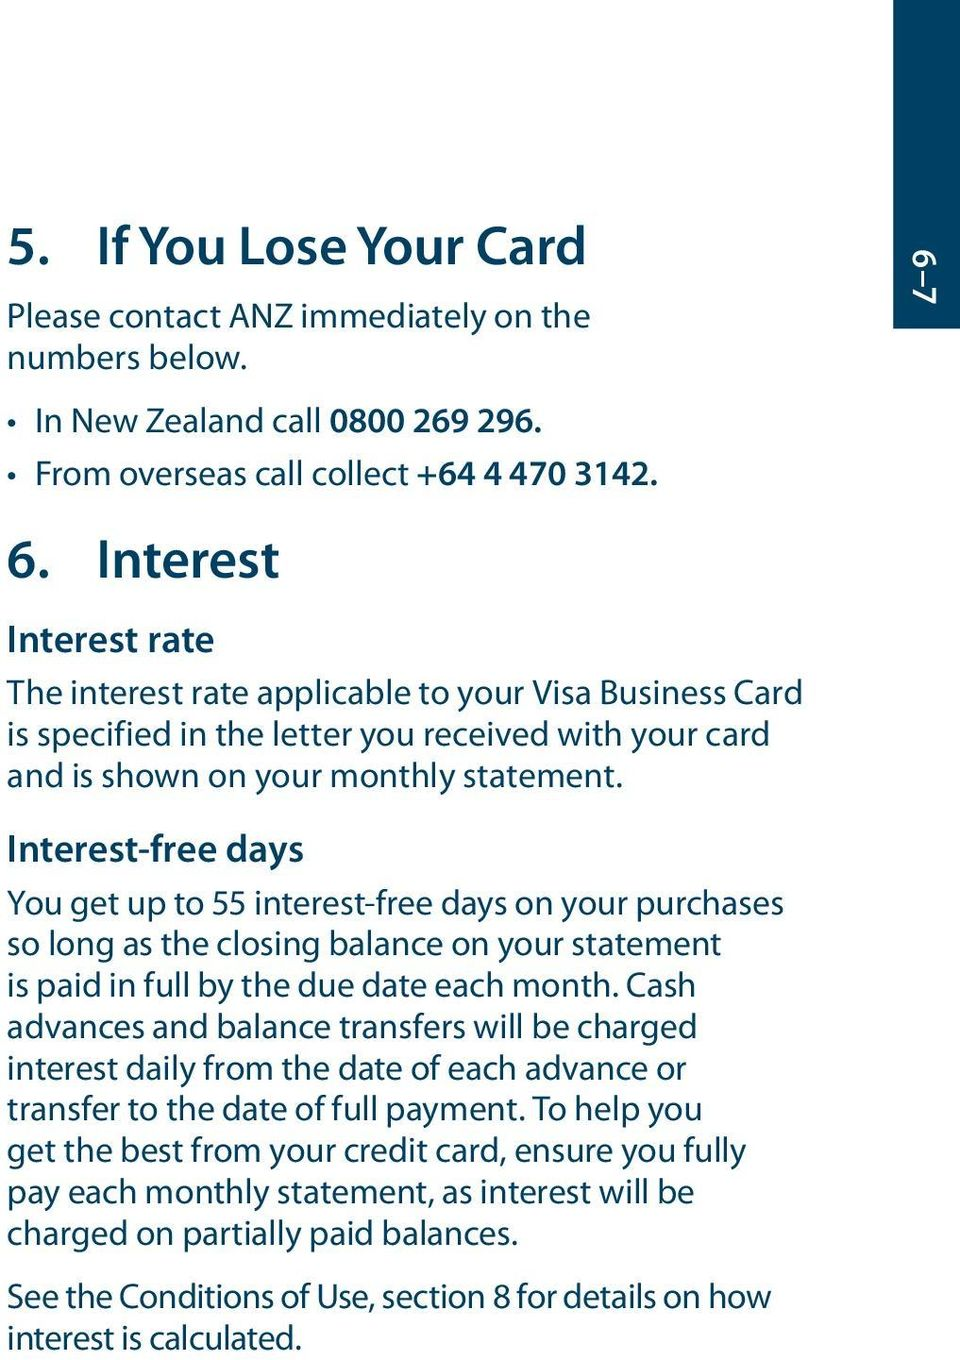 Interest Interest rate The interest rate applicable to your Visa Business Card is specified in the letter you received with your card and is shown on your monthly statement.